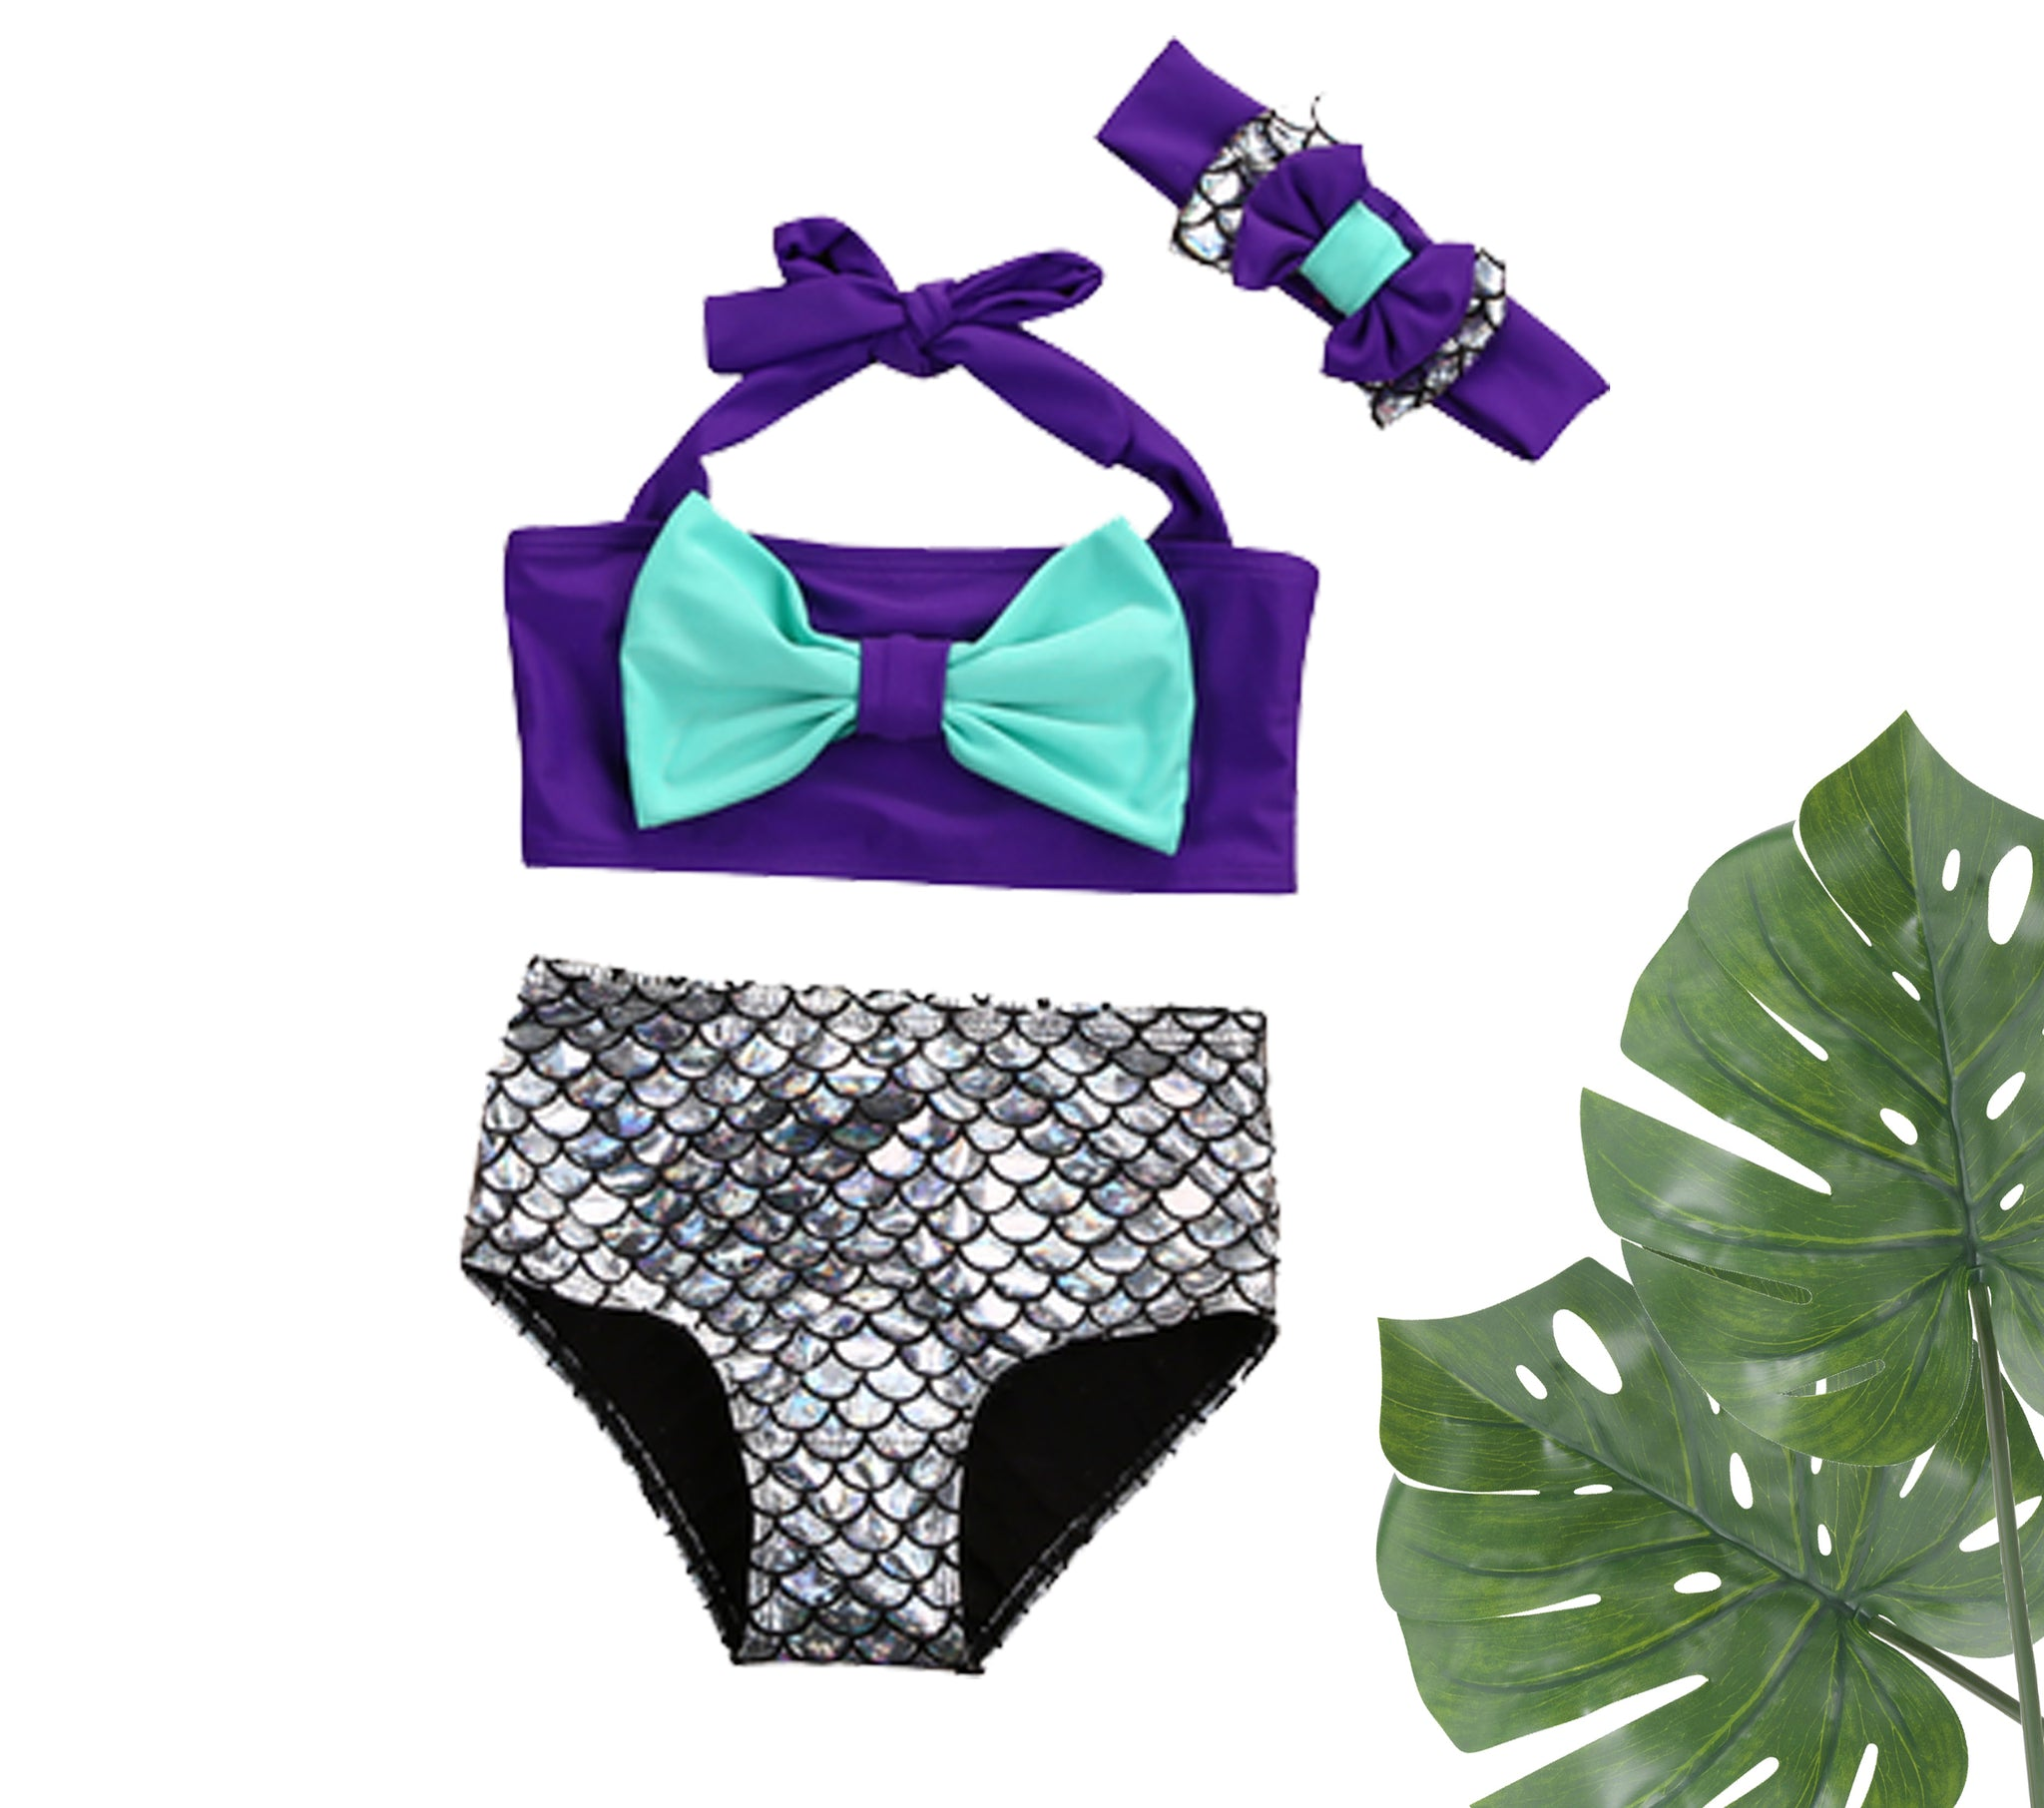 SALE: Mermaid Bikini & Headband Set